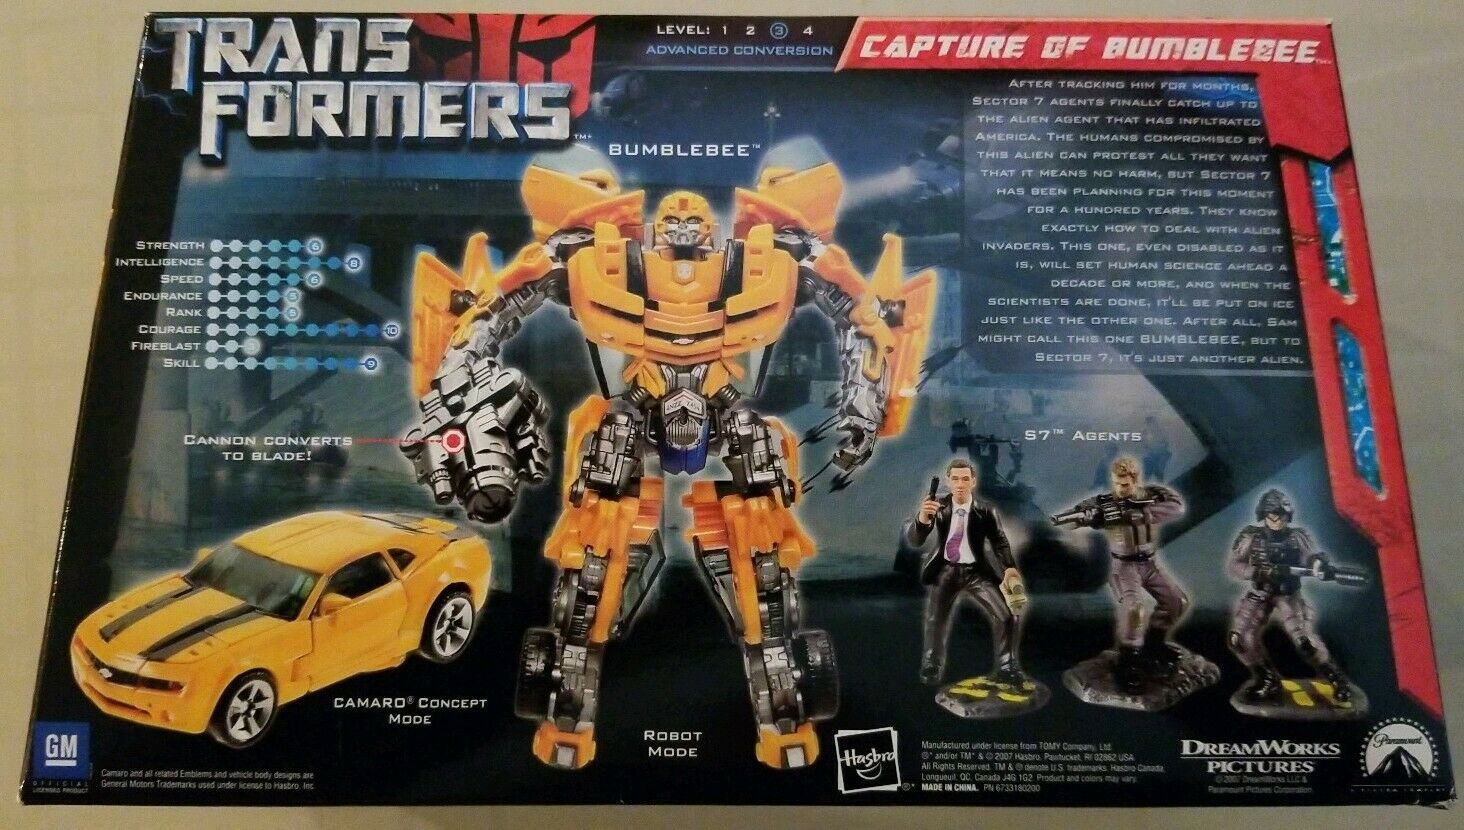 2007 HASBRO Transformers Movie Screen Battles - - - CAPTURE OF BUMBLEBEE Set - NEW  cc5b11